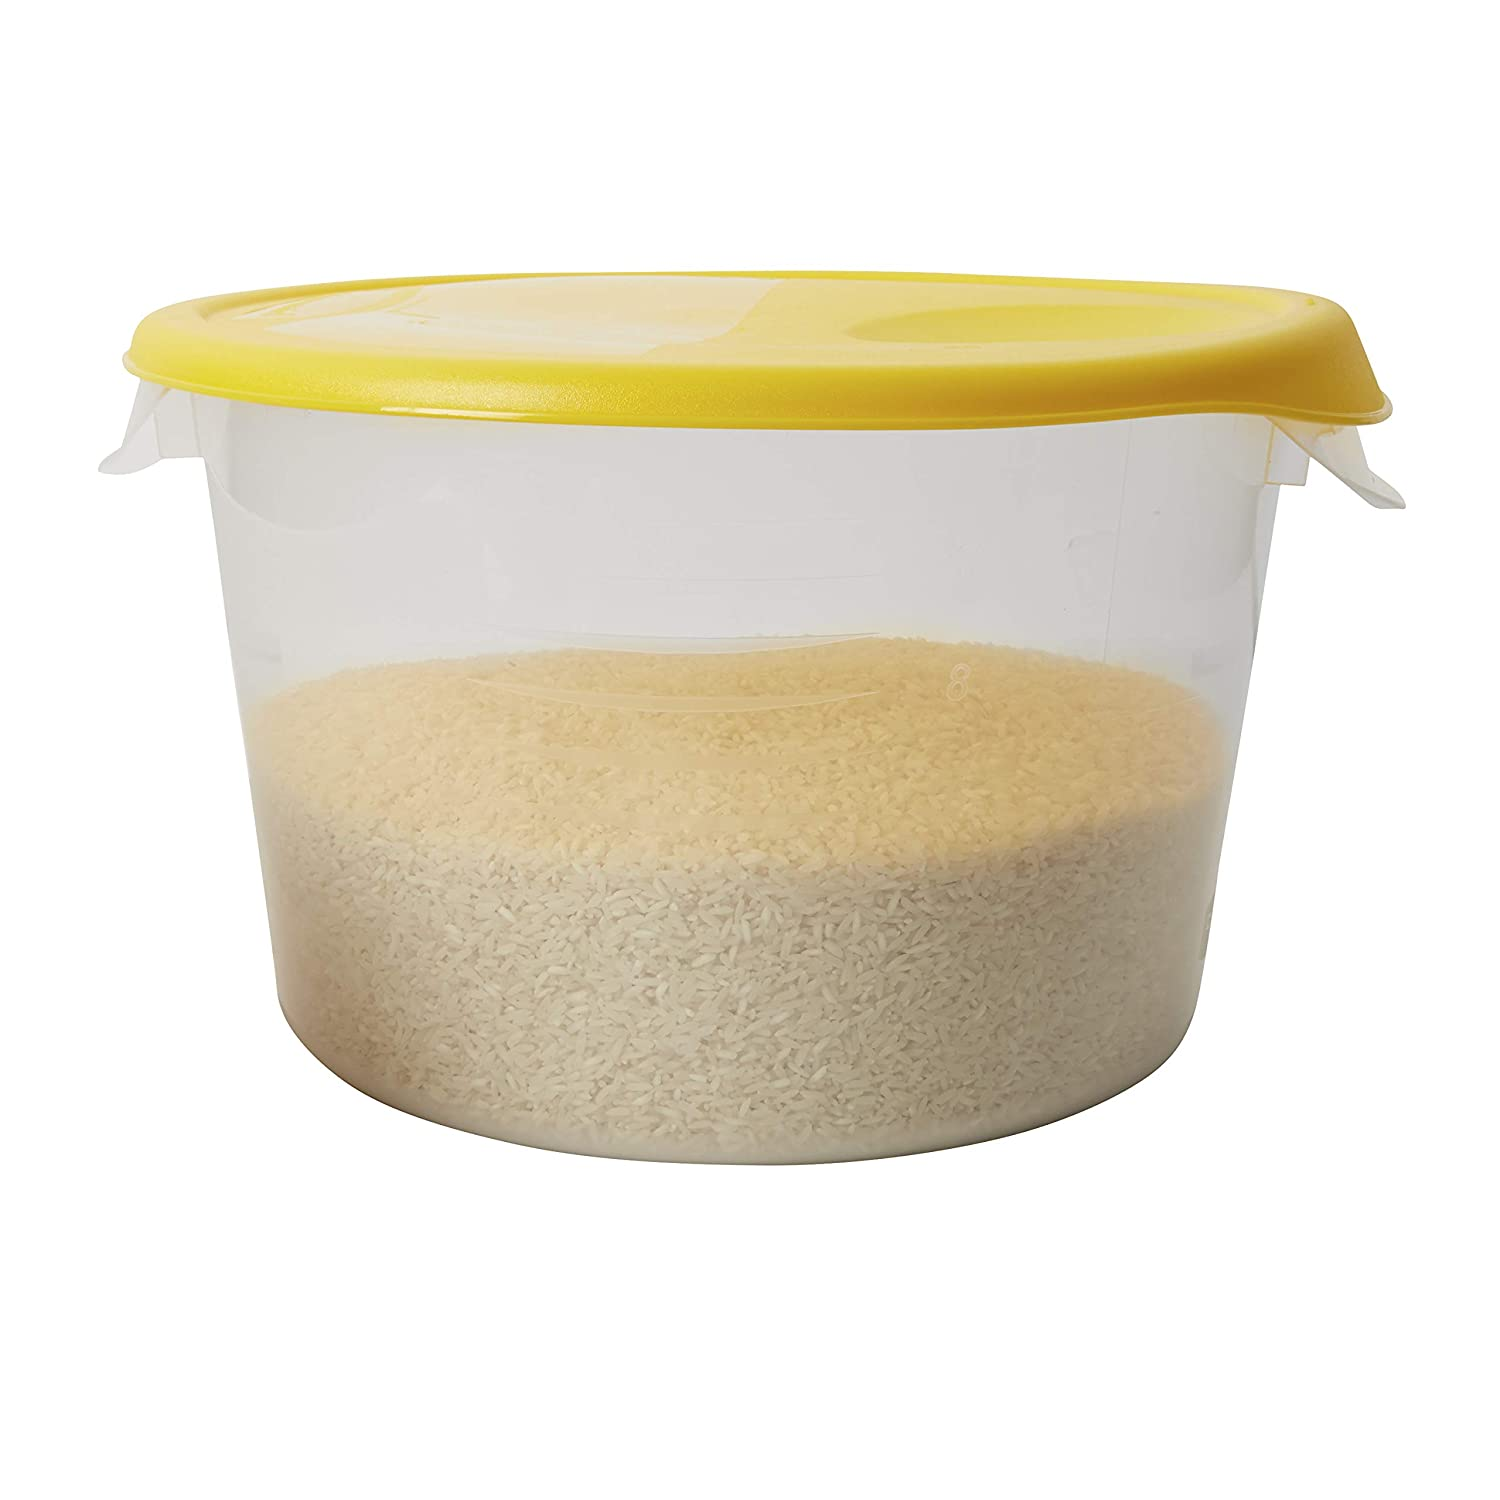 Rubbermaid Commercial Lid (Lid Only)for Round Food Storage Container, Fits 12 Qt. Containers, Yellow (FG573000YEL)